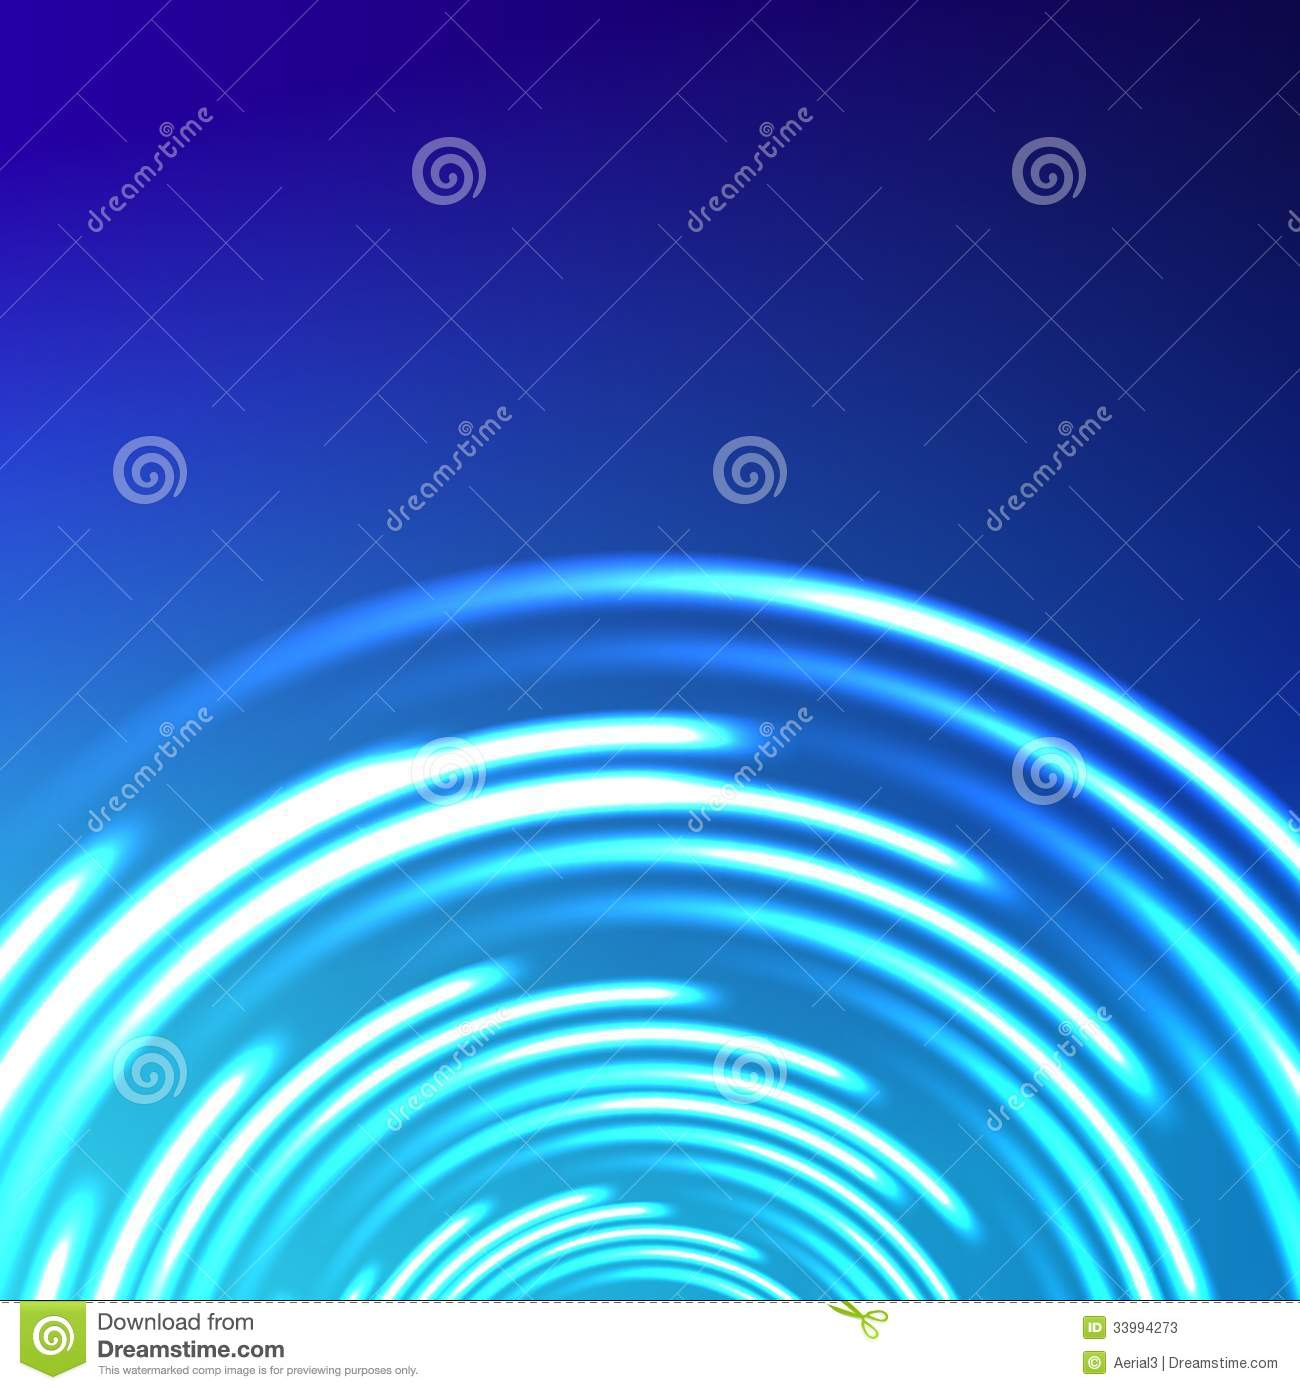 abstract background blur circle - photo #34